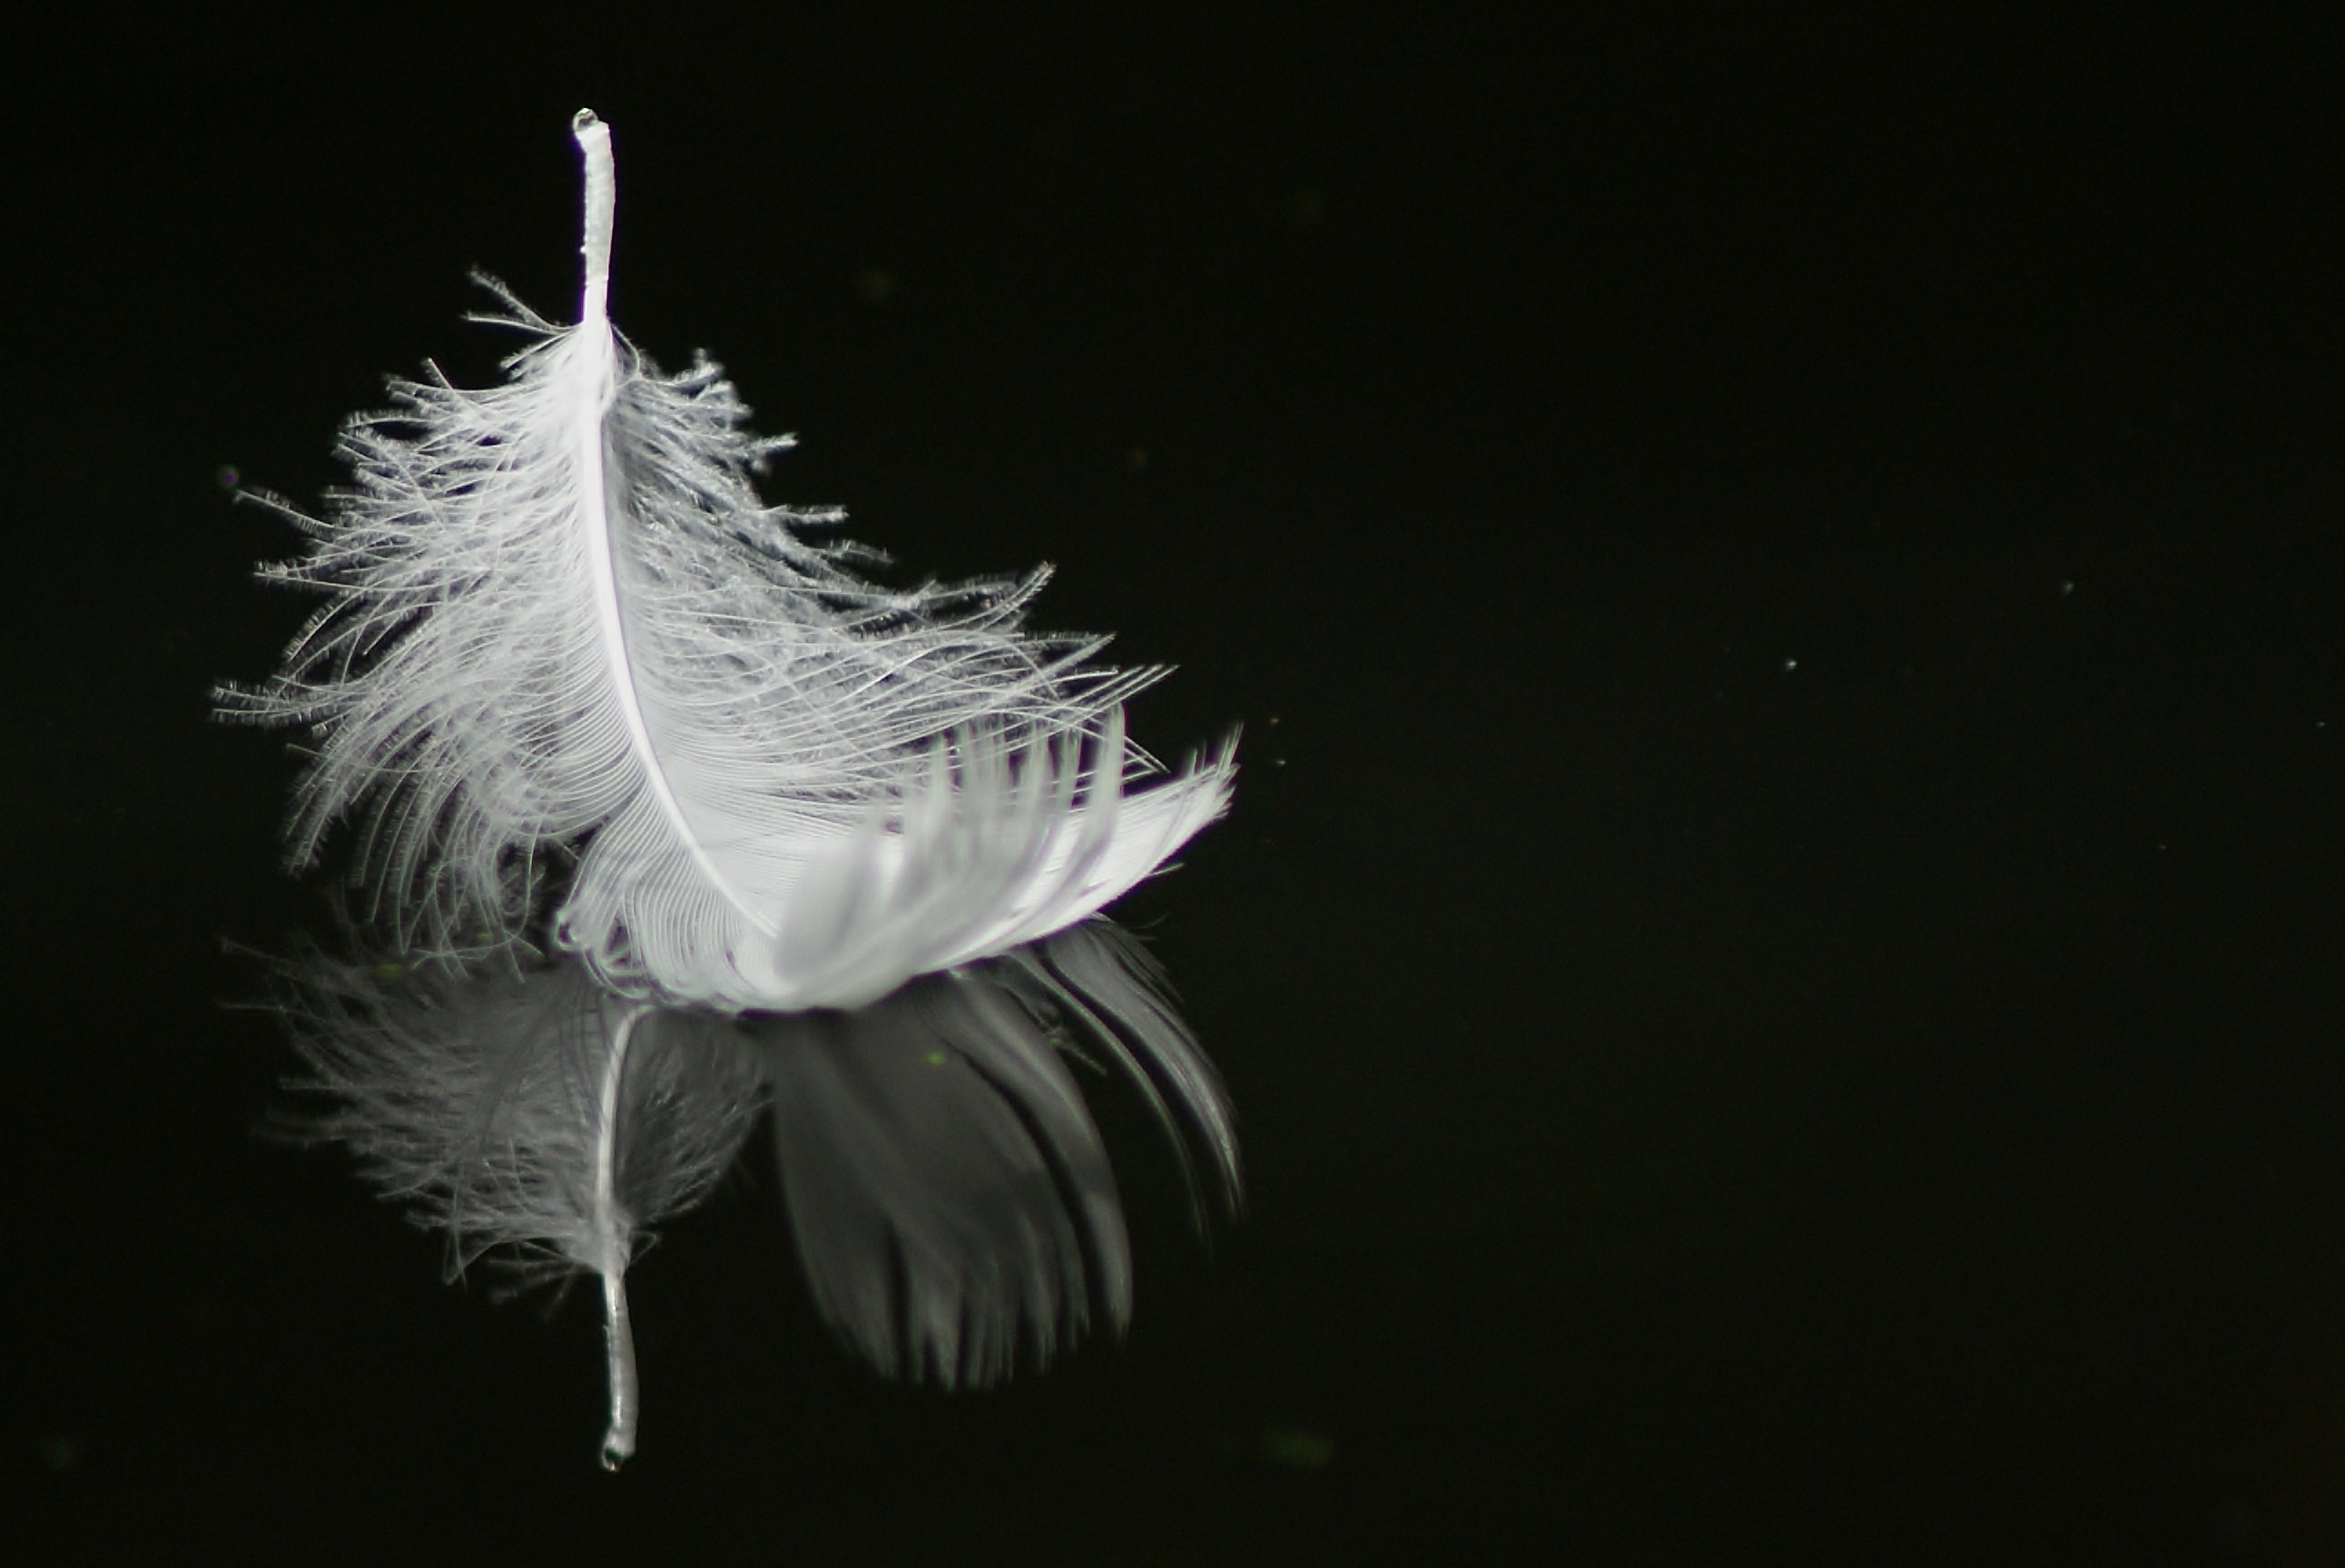 Falling Feathers Wallpaper White Invisible World